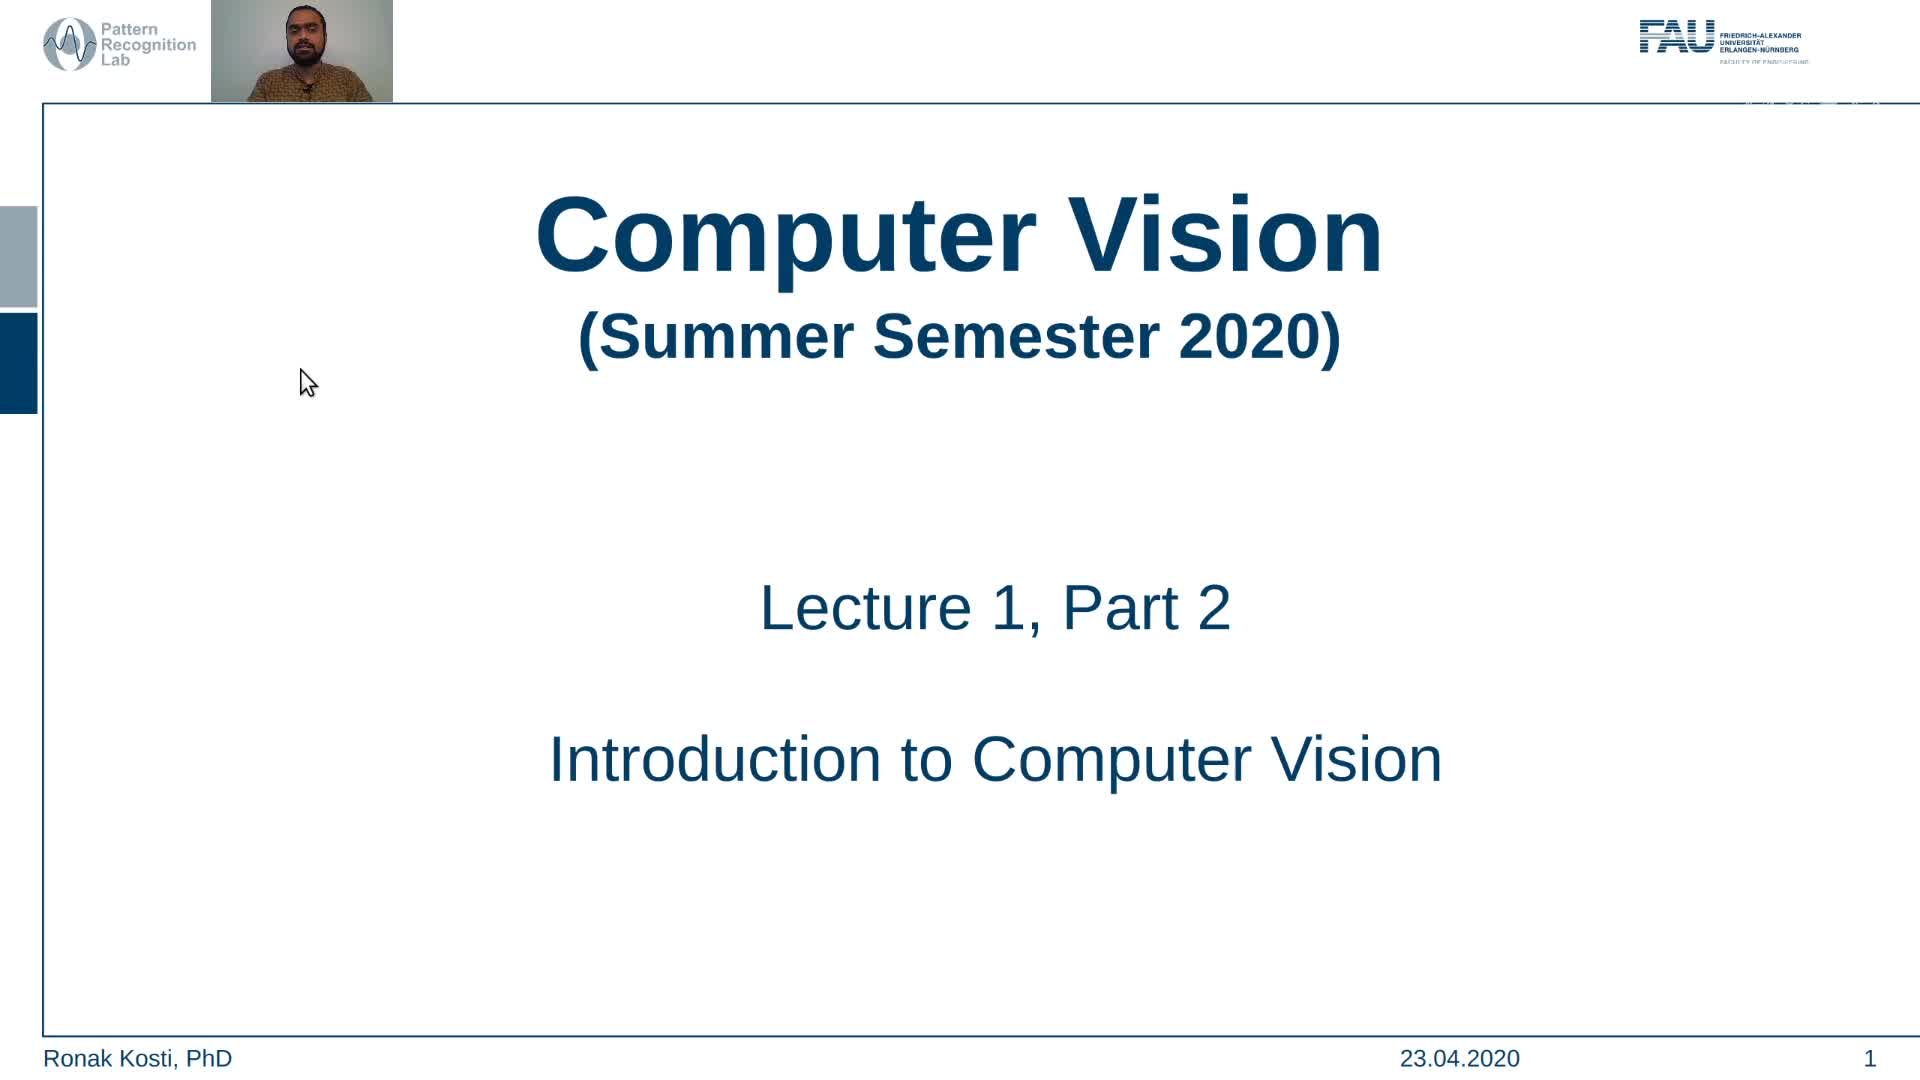 Intro to Computer Vision (Lecture 1, Part 2) preview image